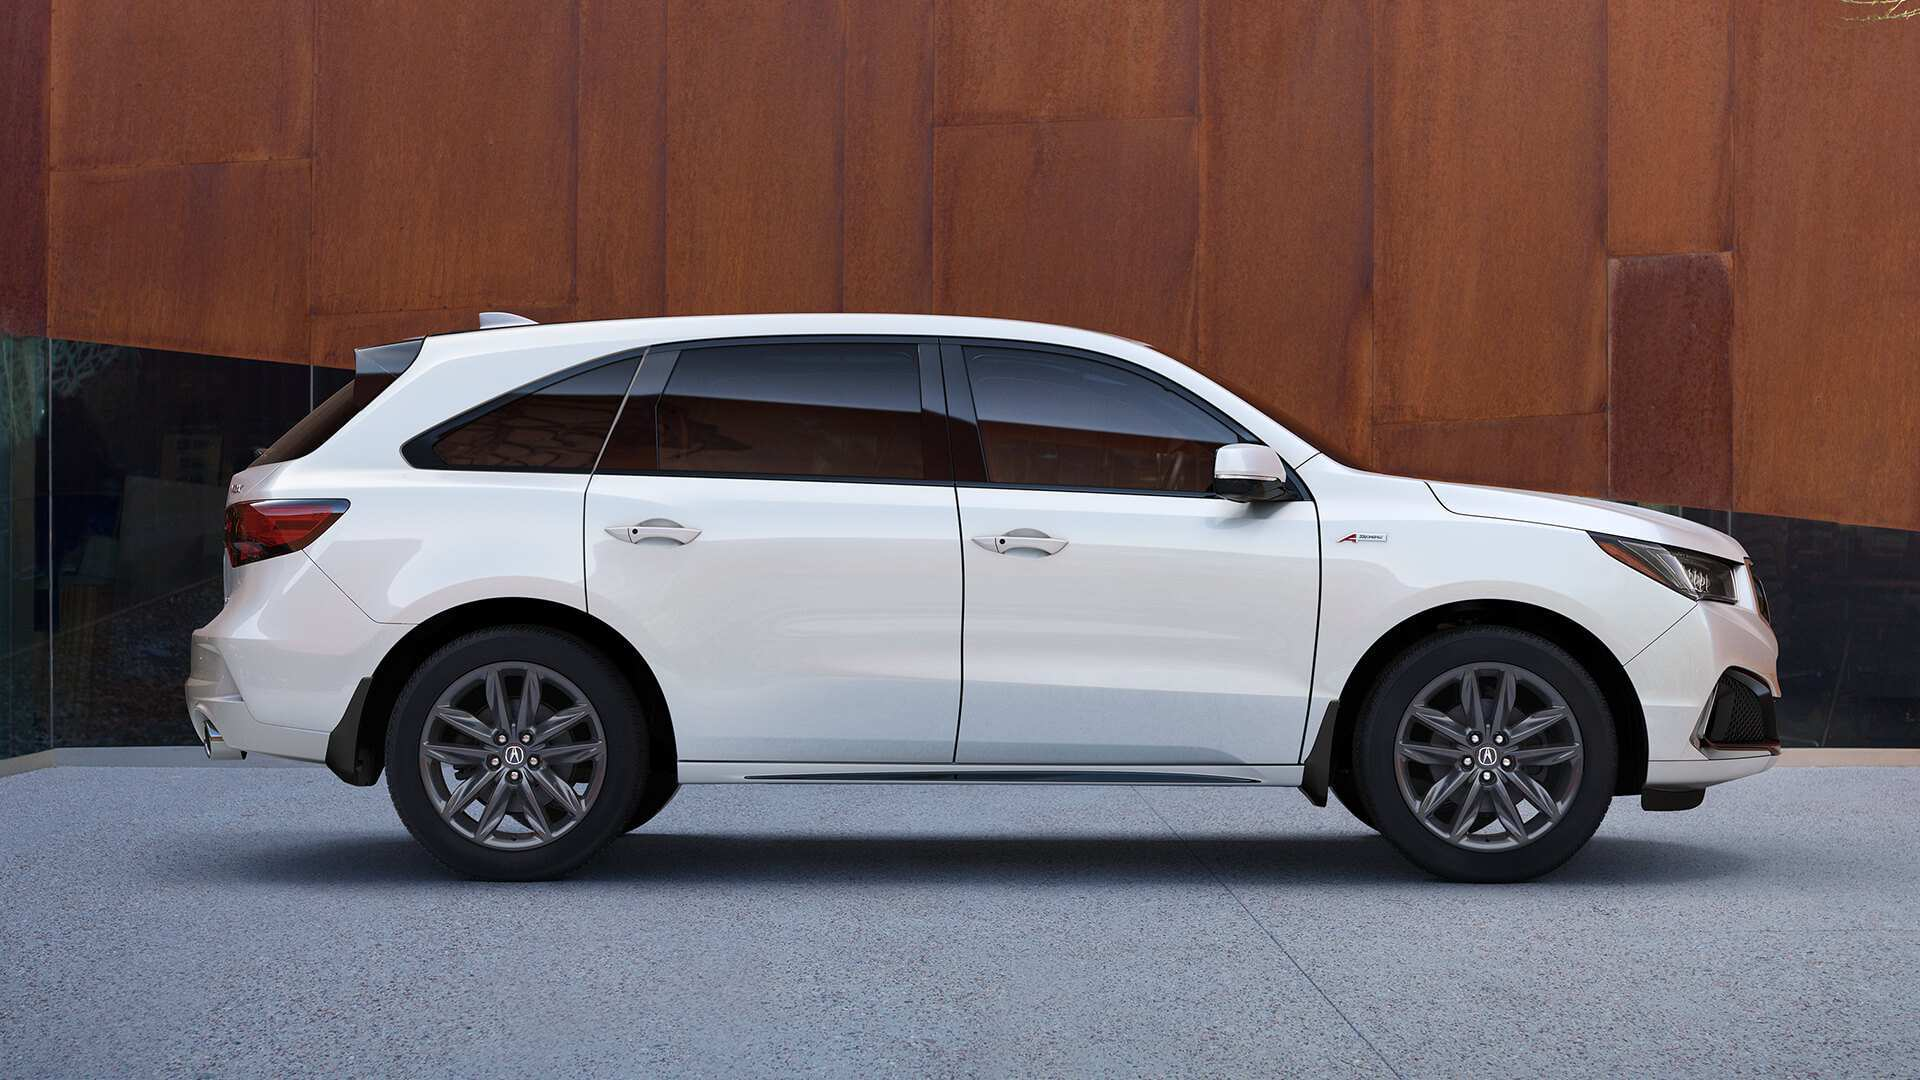 62 All New 2019 Acura MDX Ratings